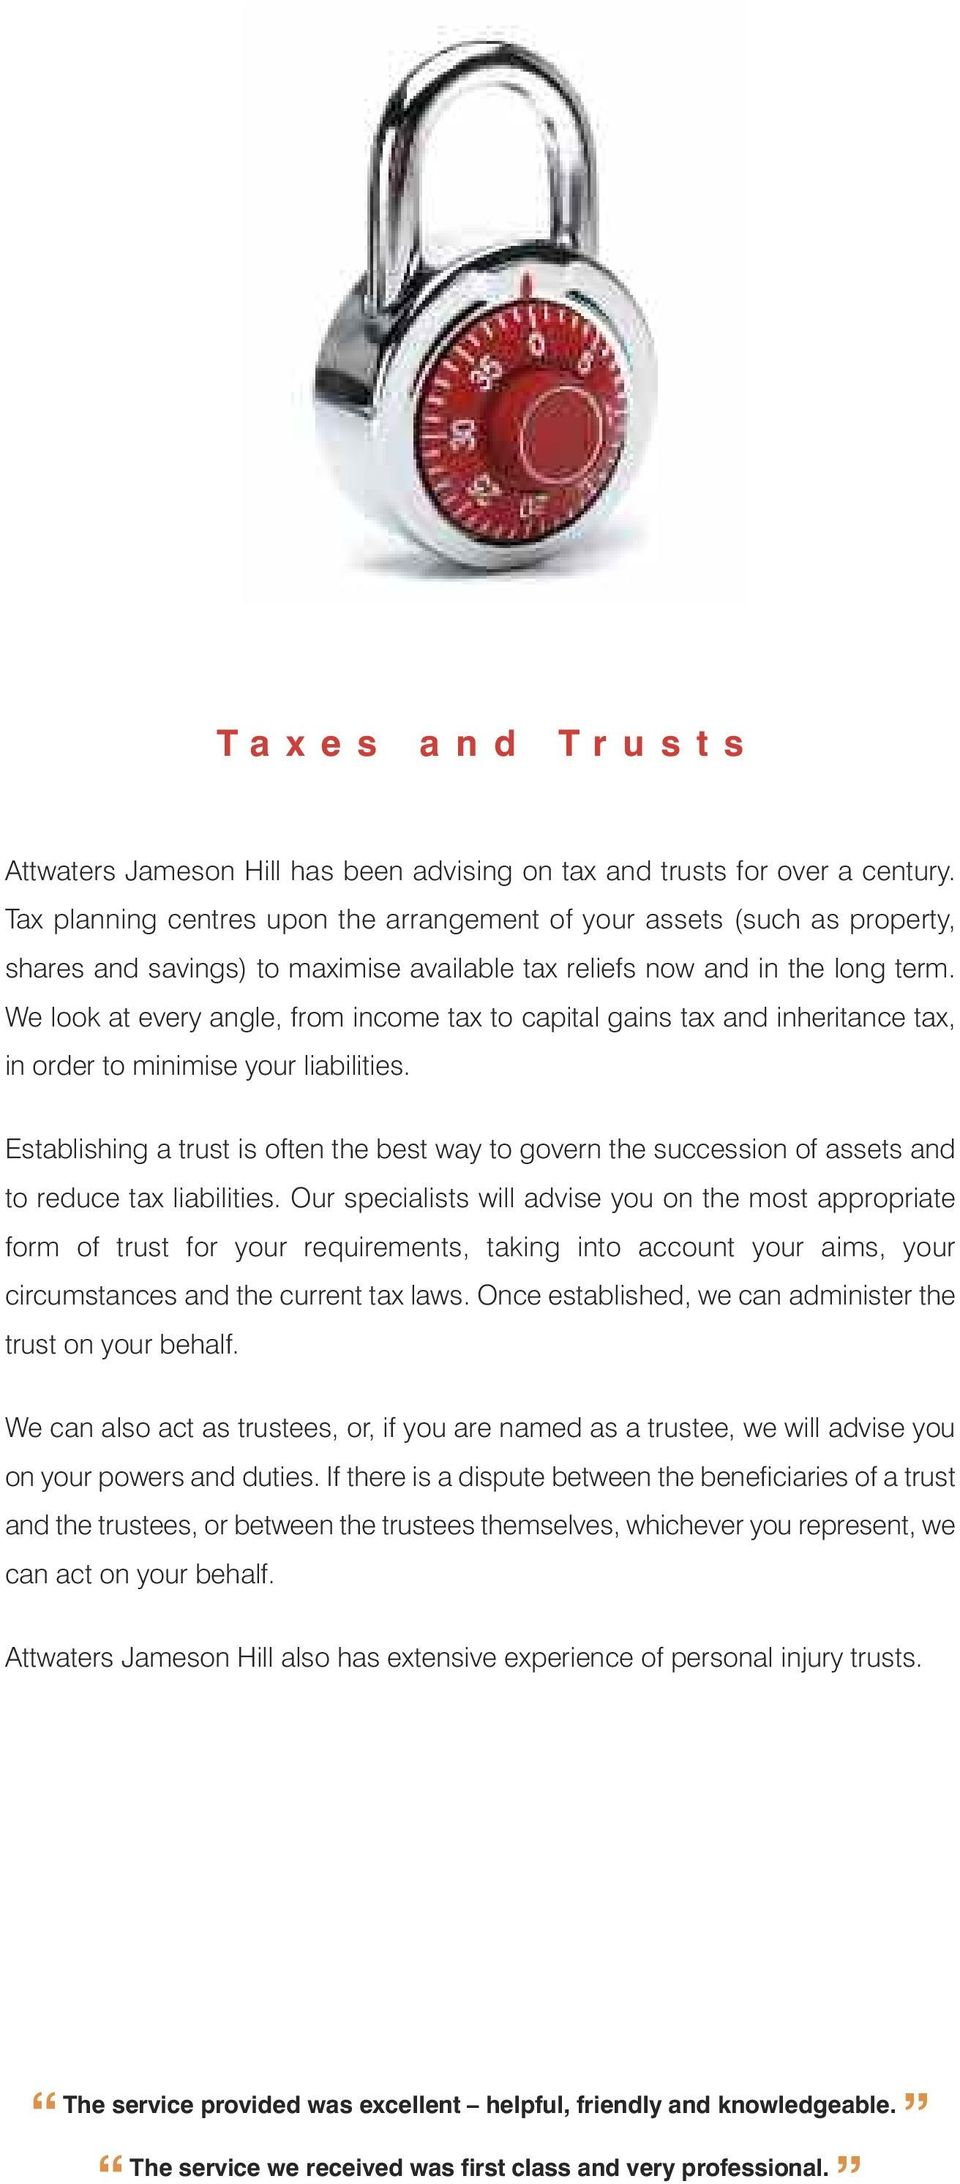 We look at every angle, from income tax to capital gains tax and inheritance tax, in order to minimise your liabilities.